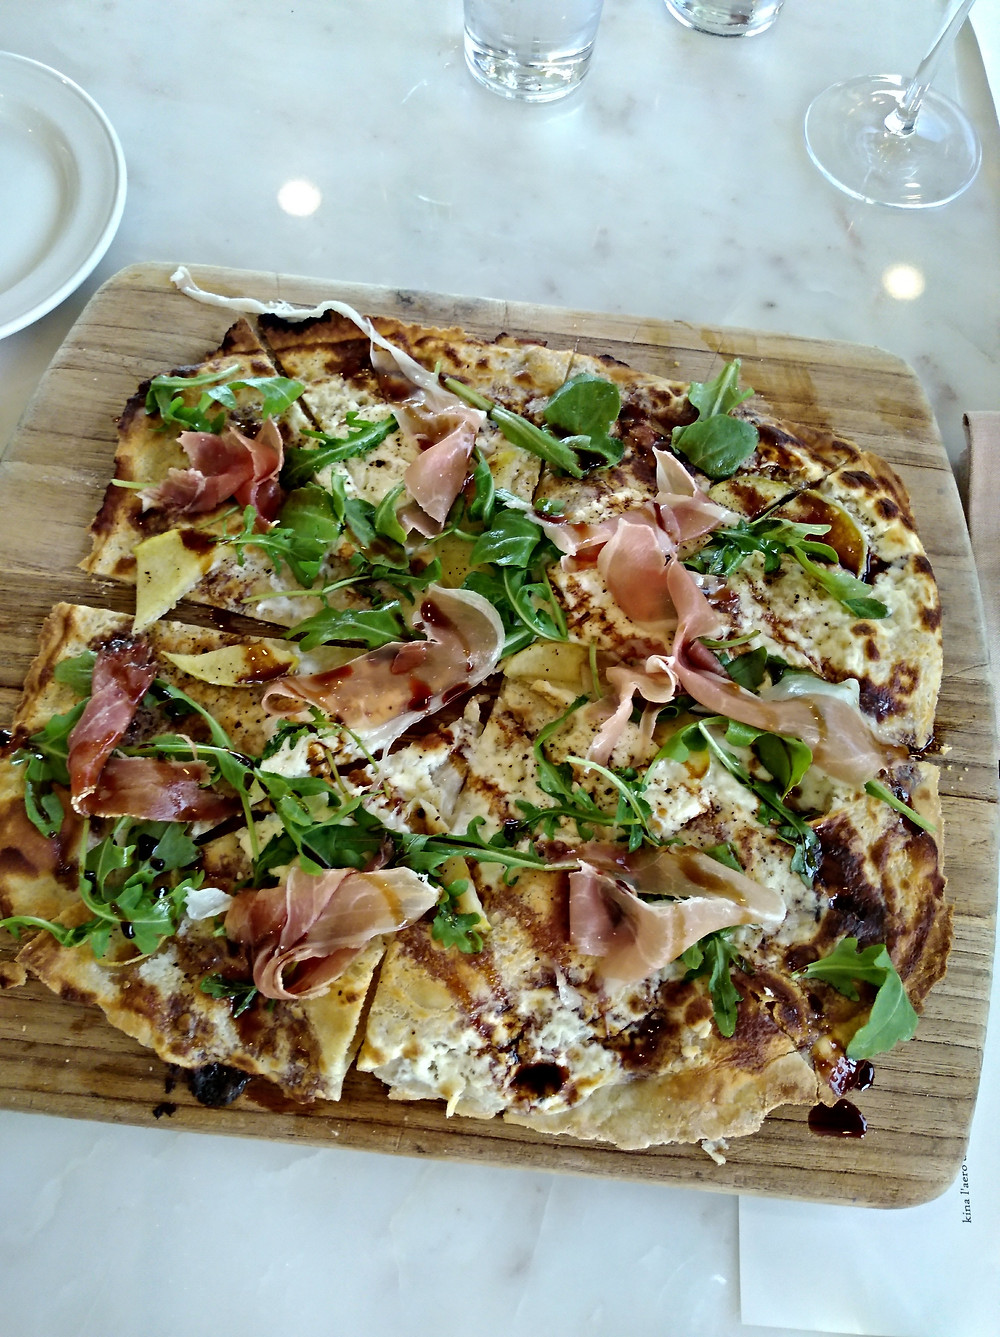 Flammkuchen is German pizza